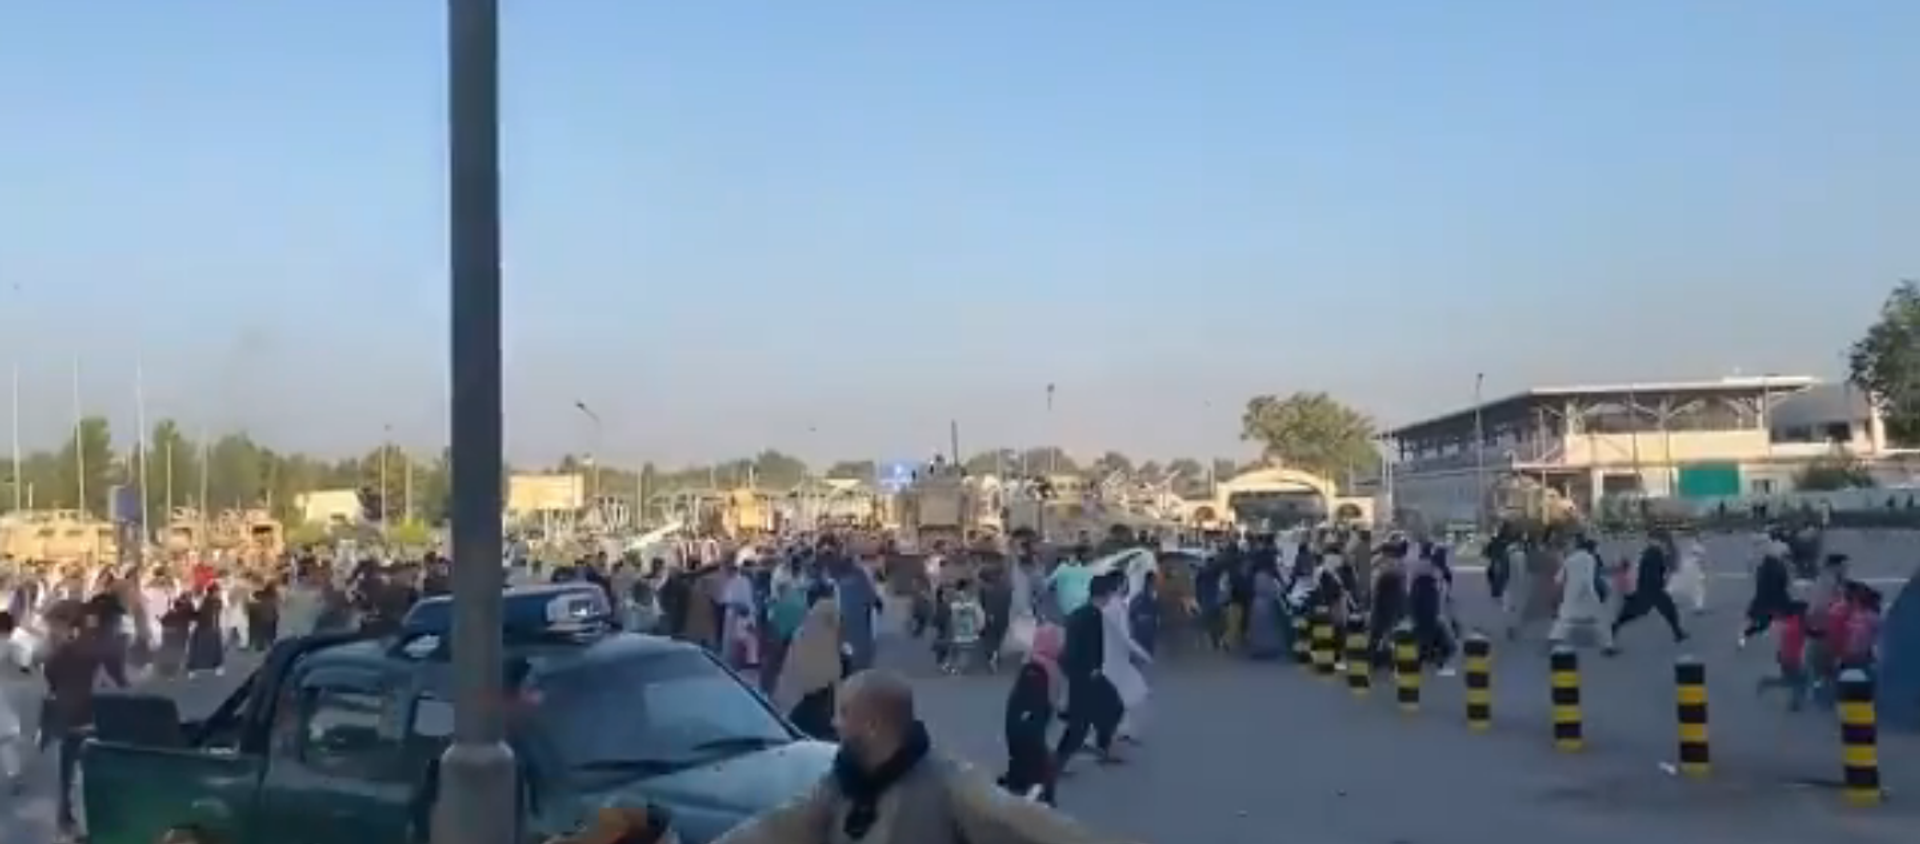 Screenshot from a video allegedly showing a crowd of people rushing to the Kabul international airport as gunshots are heard - Sputnik International, 1920